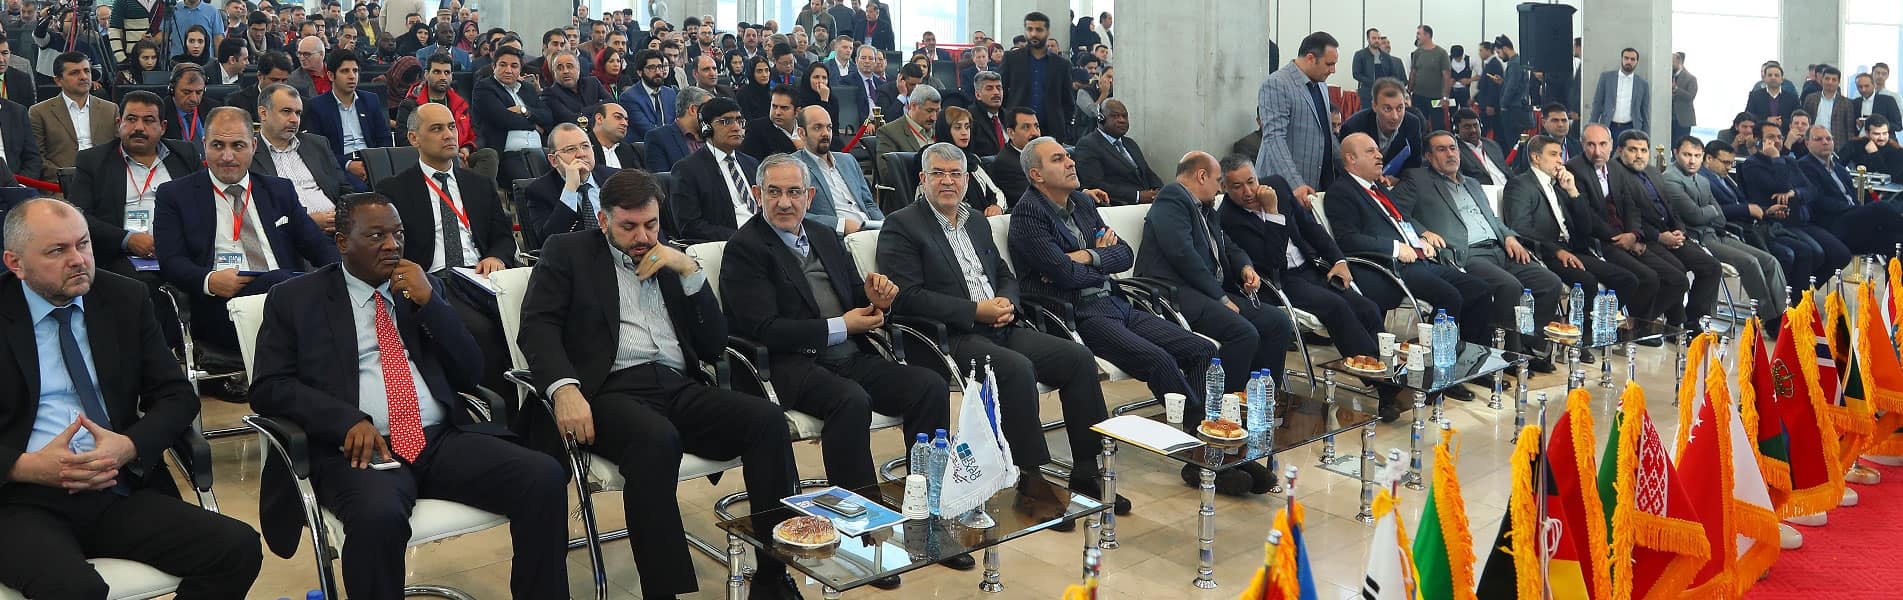 Opening Ceremony (Iran expo 2018)